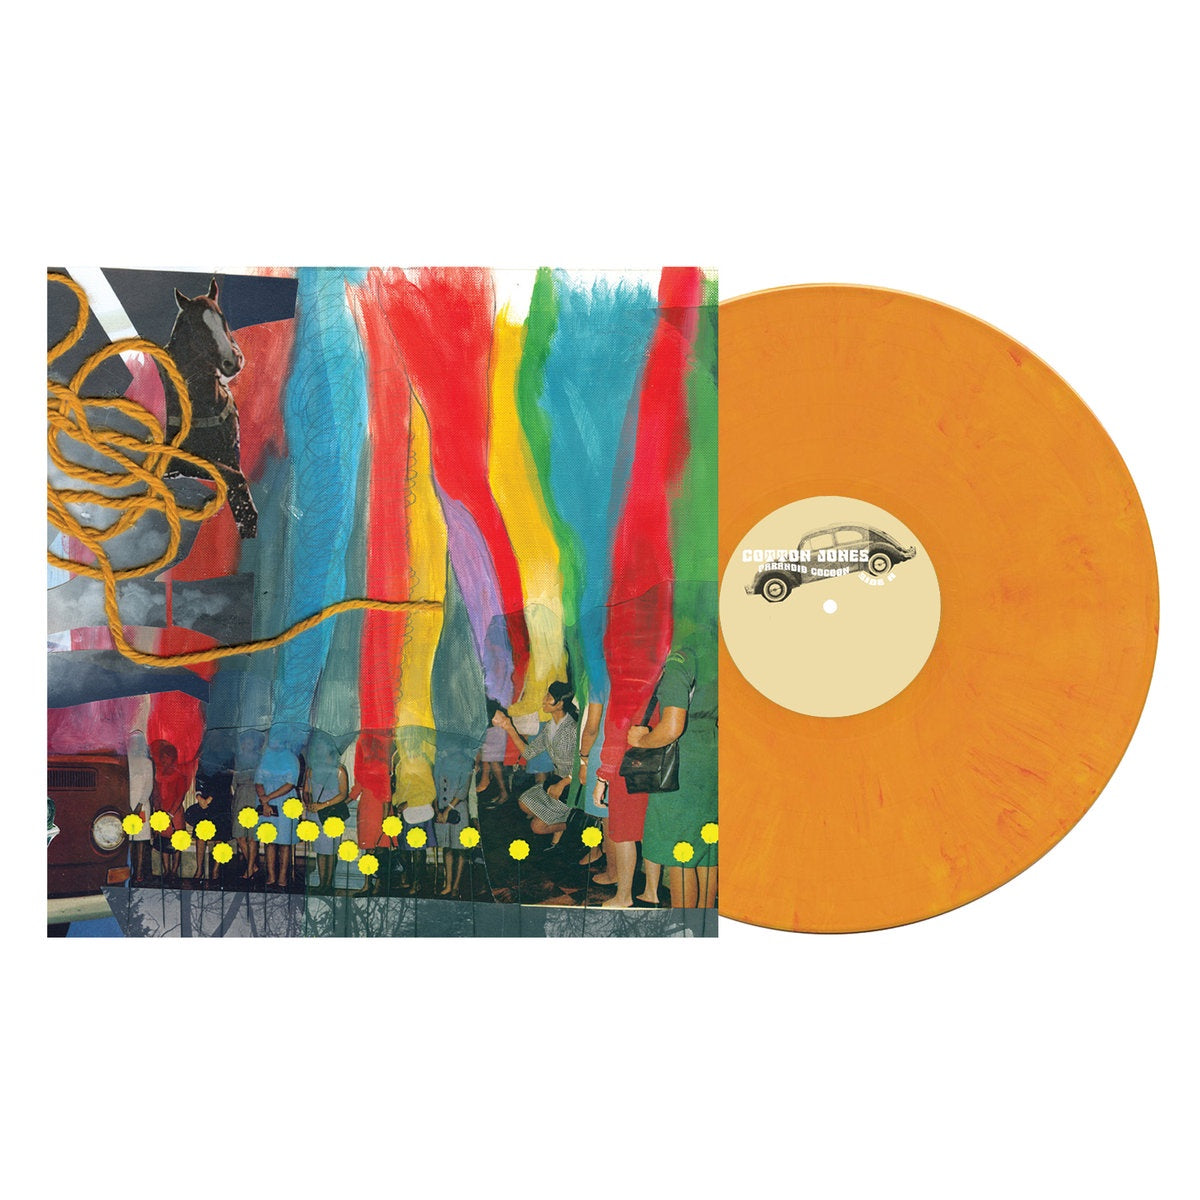 Cotton Jones ‎– Paranoid Cocoon (2009) - New Lp Record 2019 Suicide Squeeze 180 gram Orange Vinyl - Psychedelic Rock / Country Rock